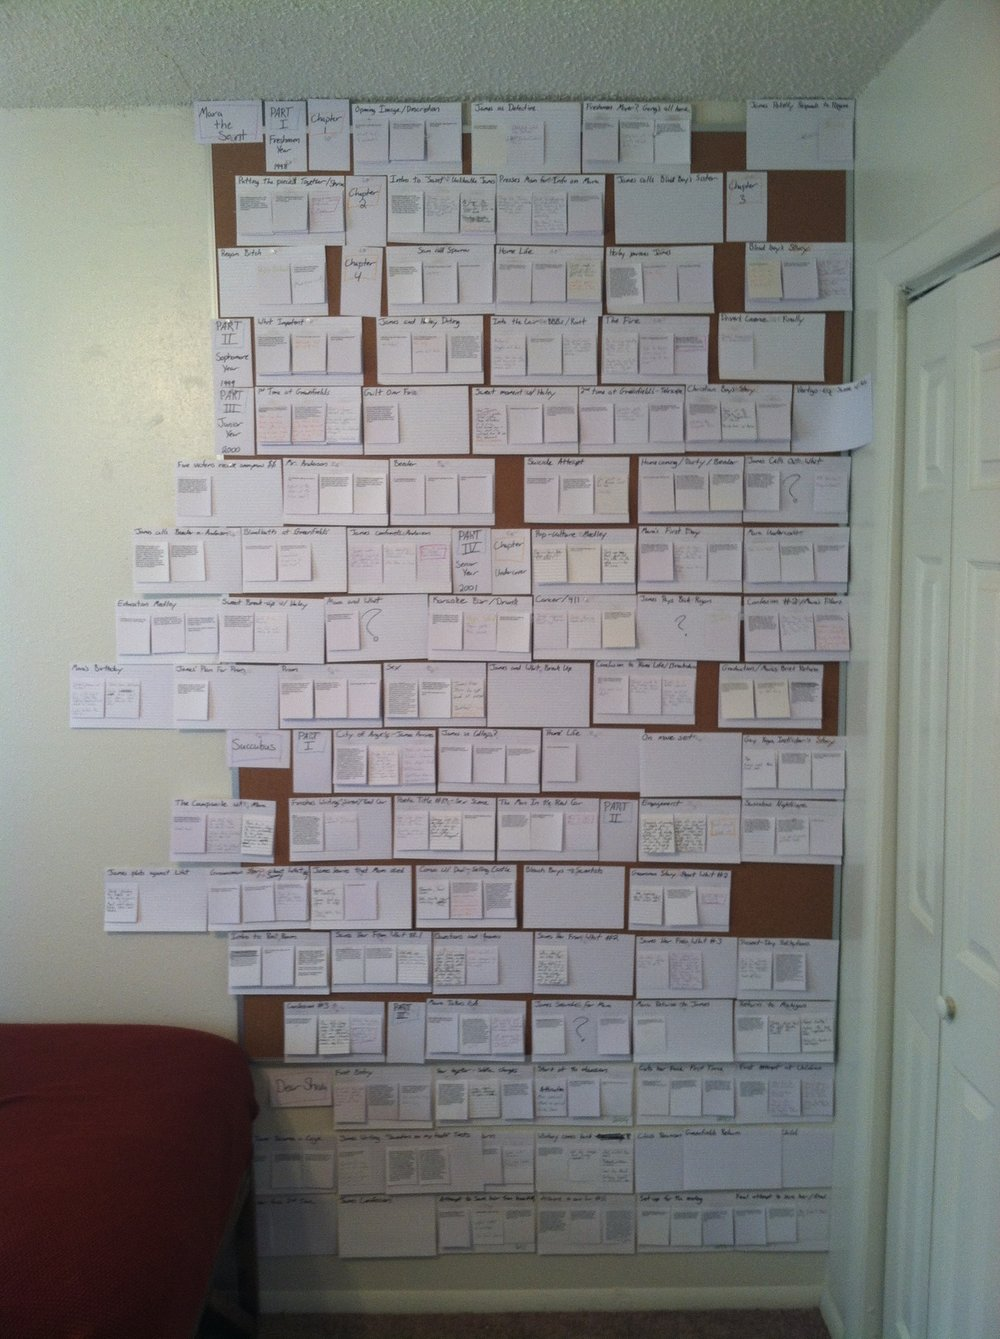 THE FUTURE OF MARA LYNN - I have three more books planned out. Book two (Mara the Saint) takes place in high school, book three in Los Angeles, and book four... I can't tell you.The picture shows my bulliton boards in my old Arkansas apartment mapping out books two, three, and four of the Mara series. If you look closely enough, you might find spoilers...